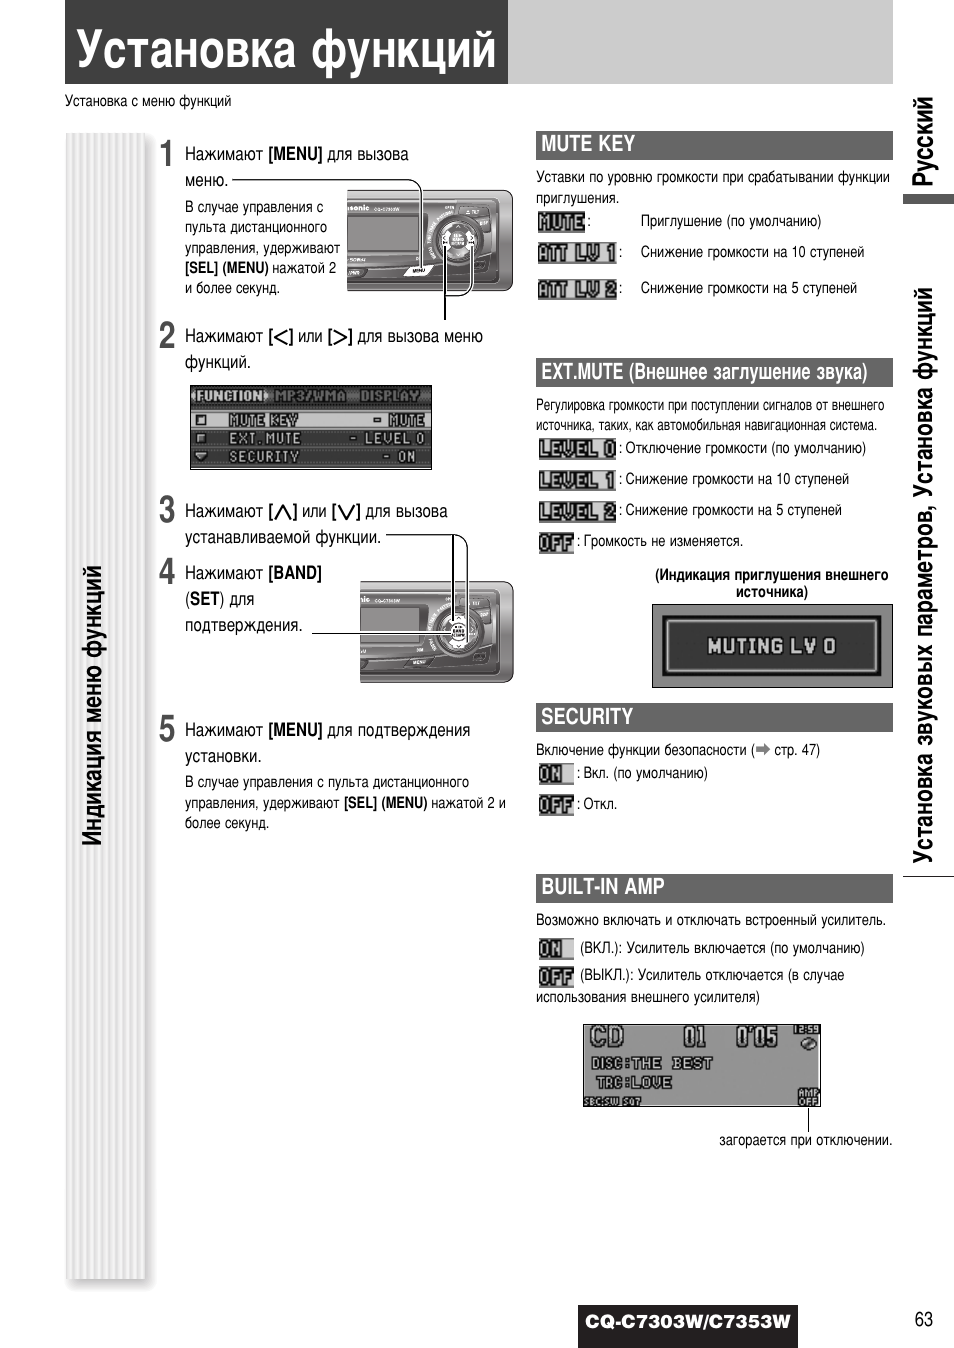 Preview of panasonic cq-c7303w 1st page click on the link for free download!